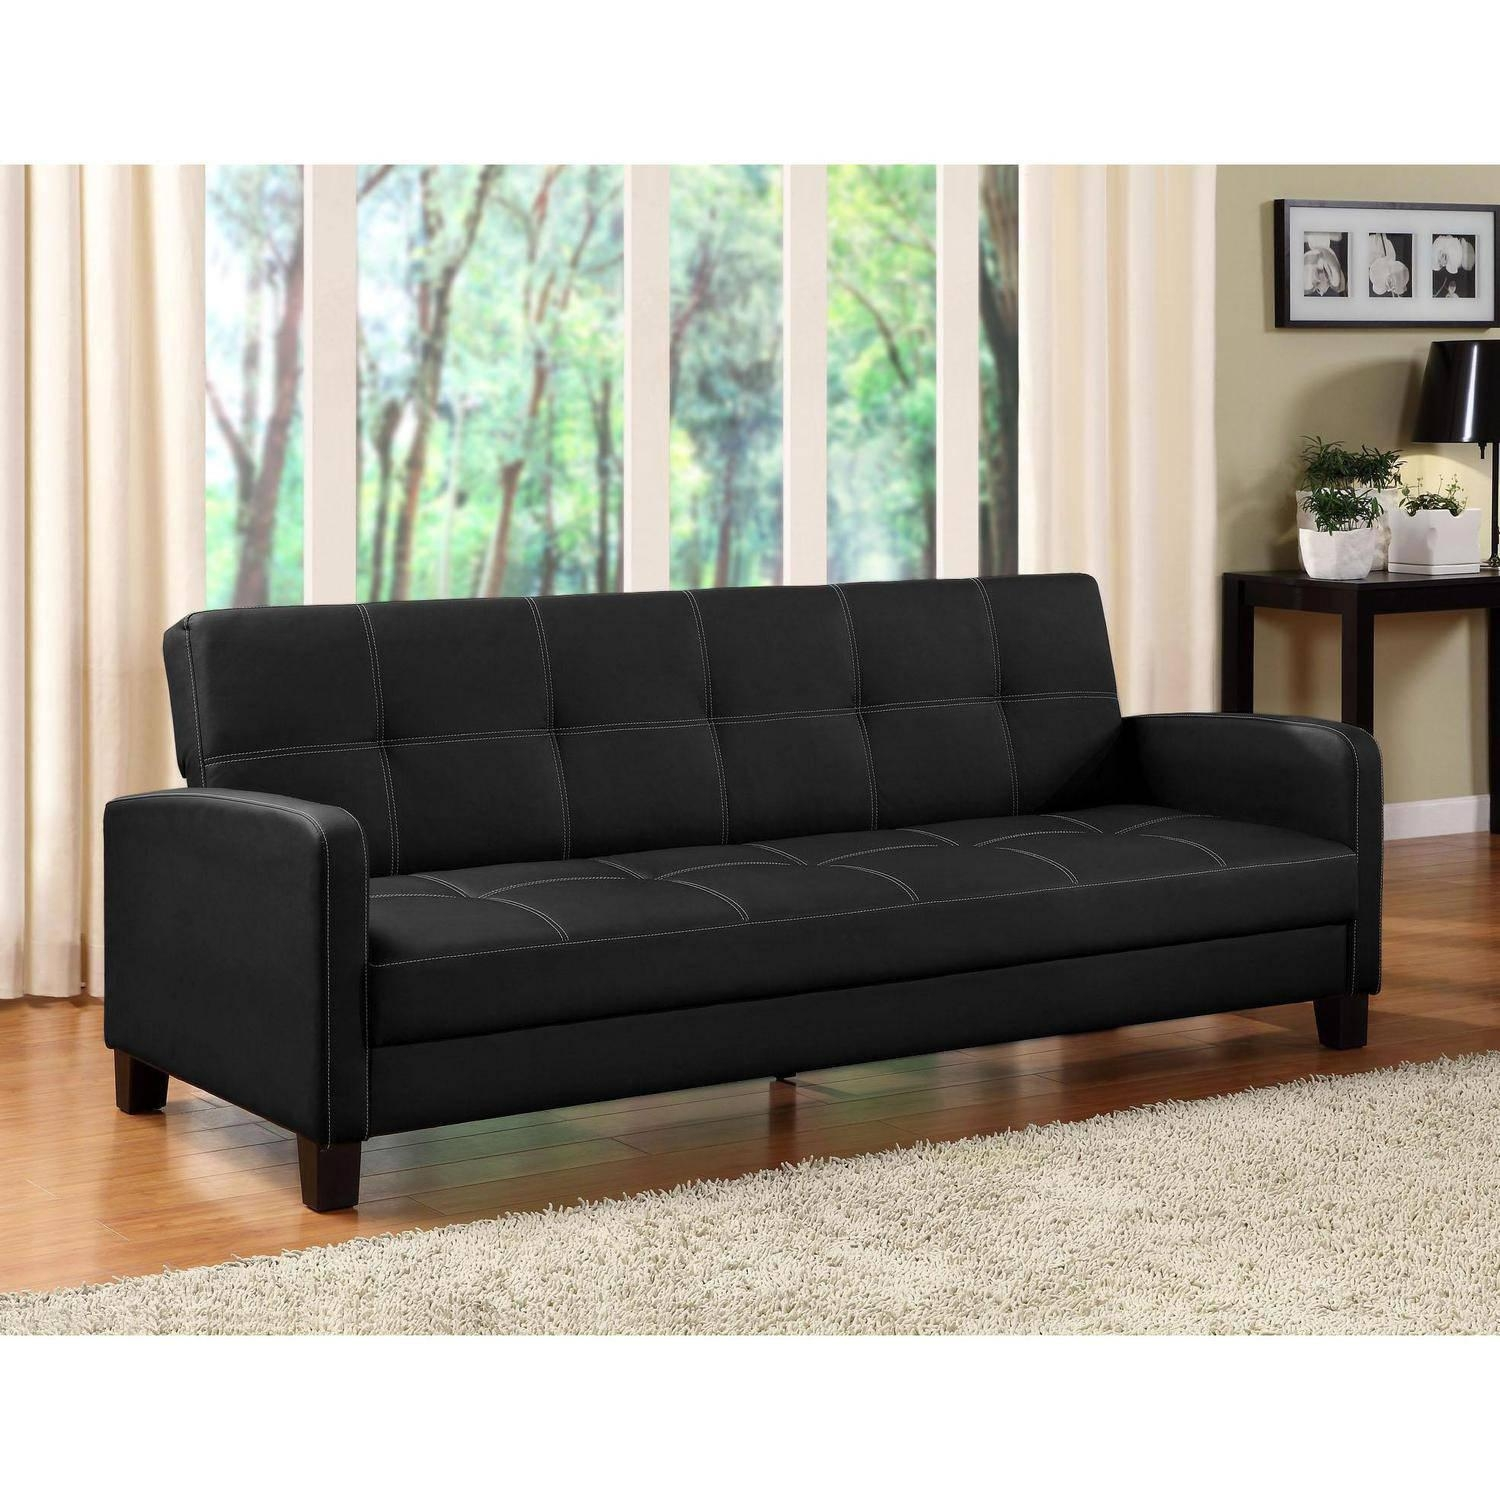 Walmart Faux Leather Sleeper Sofa – Ansugallery With Faux Leather Sleeper Sofas (Image 20 of 20)